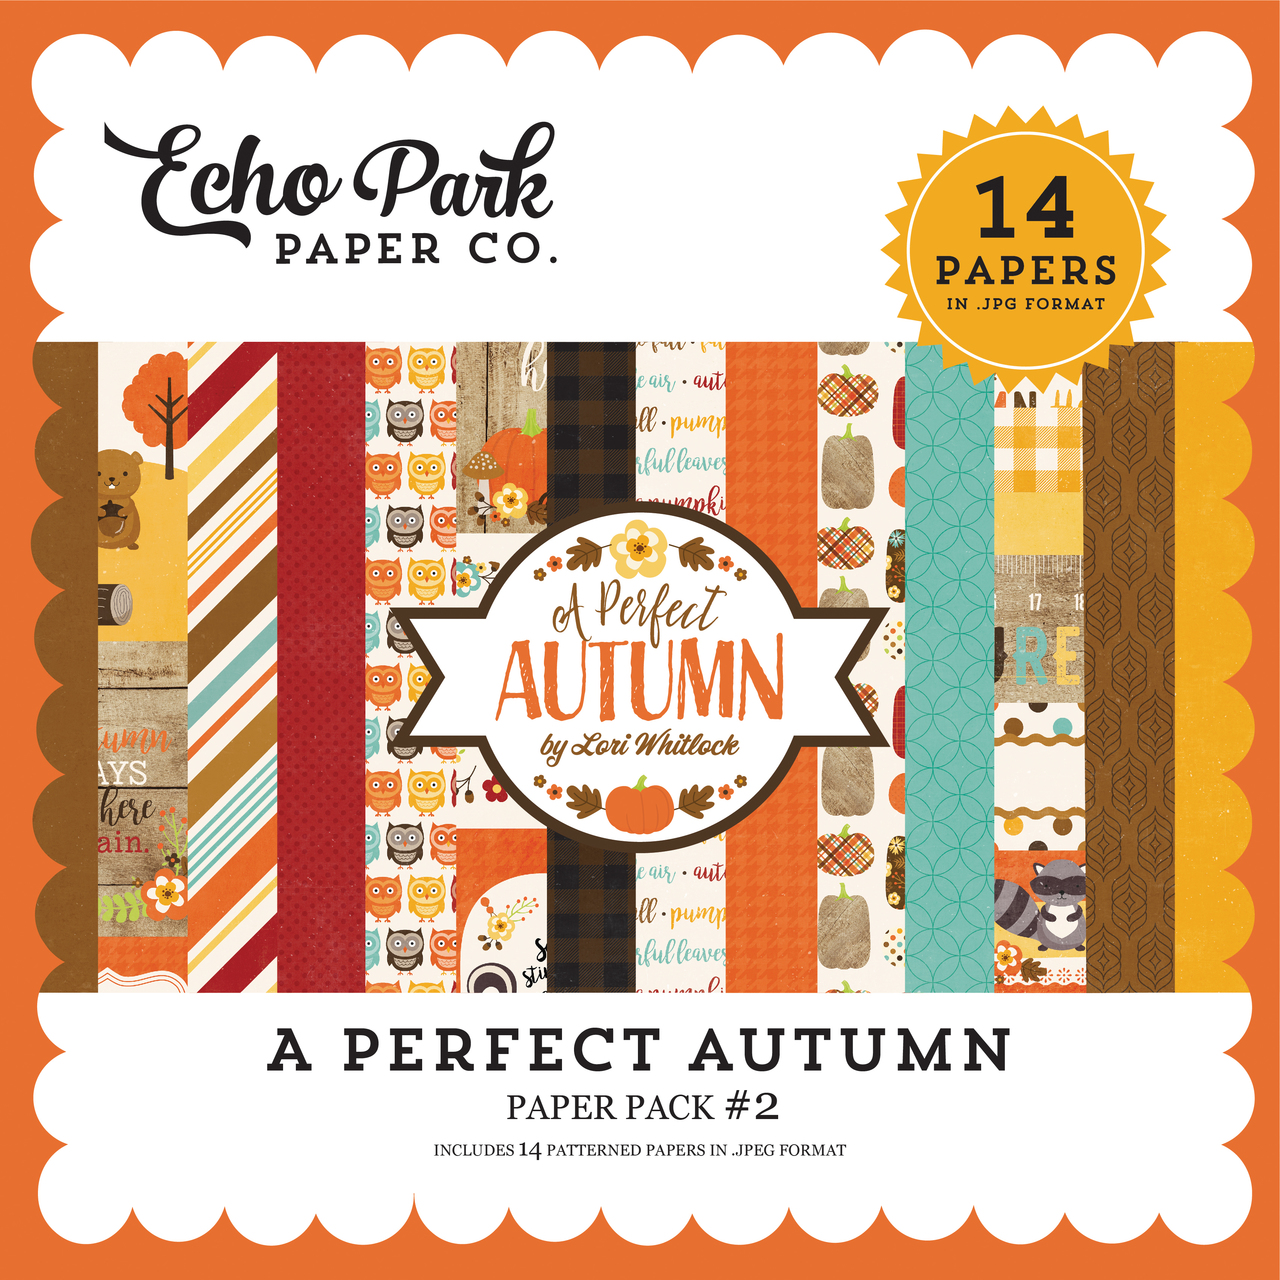 A Perfect Autumn Paper Pack #2